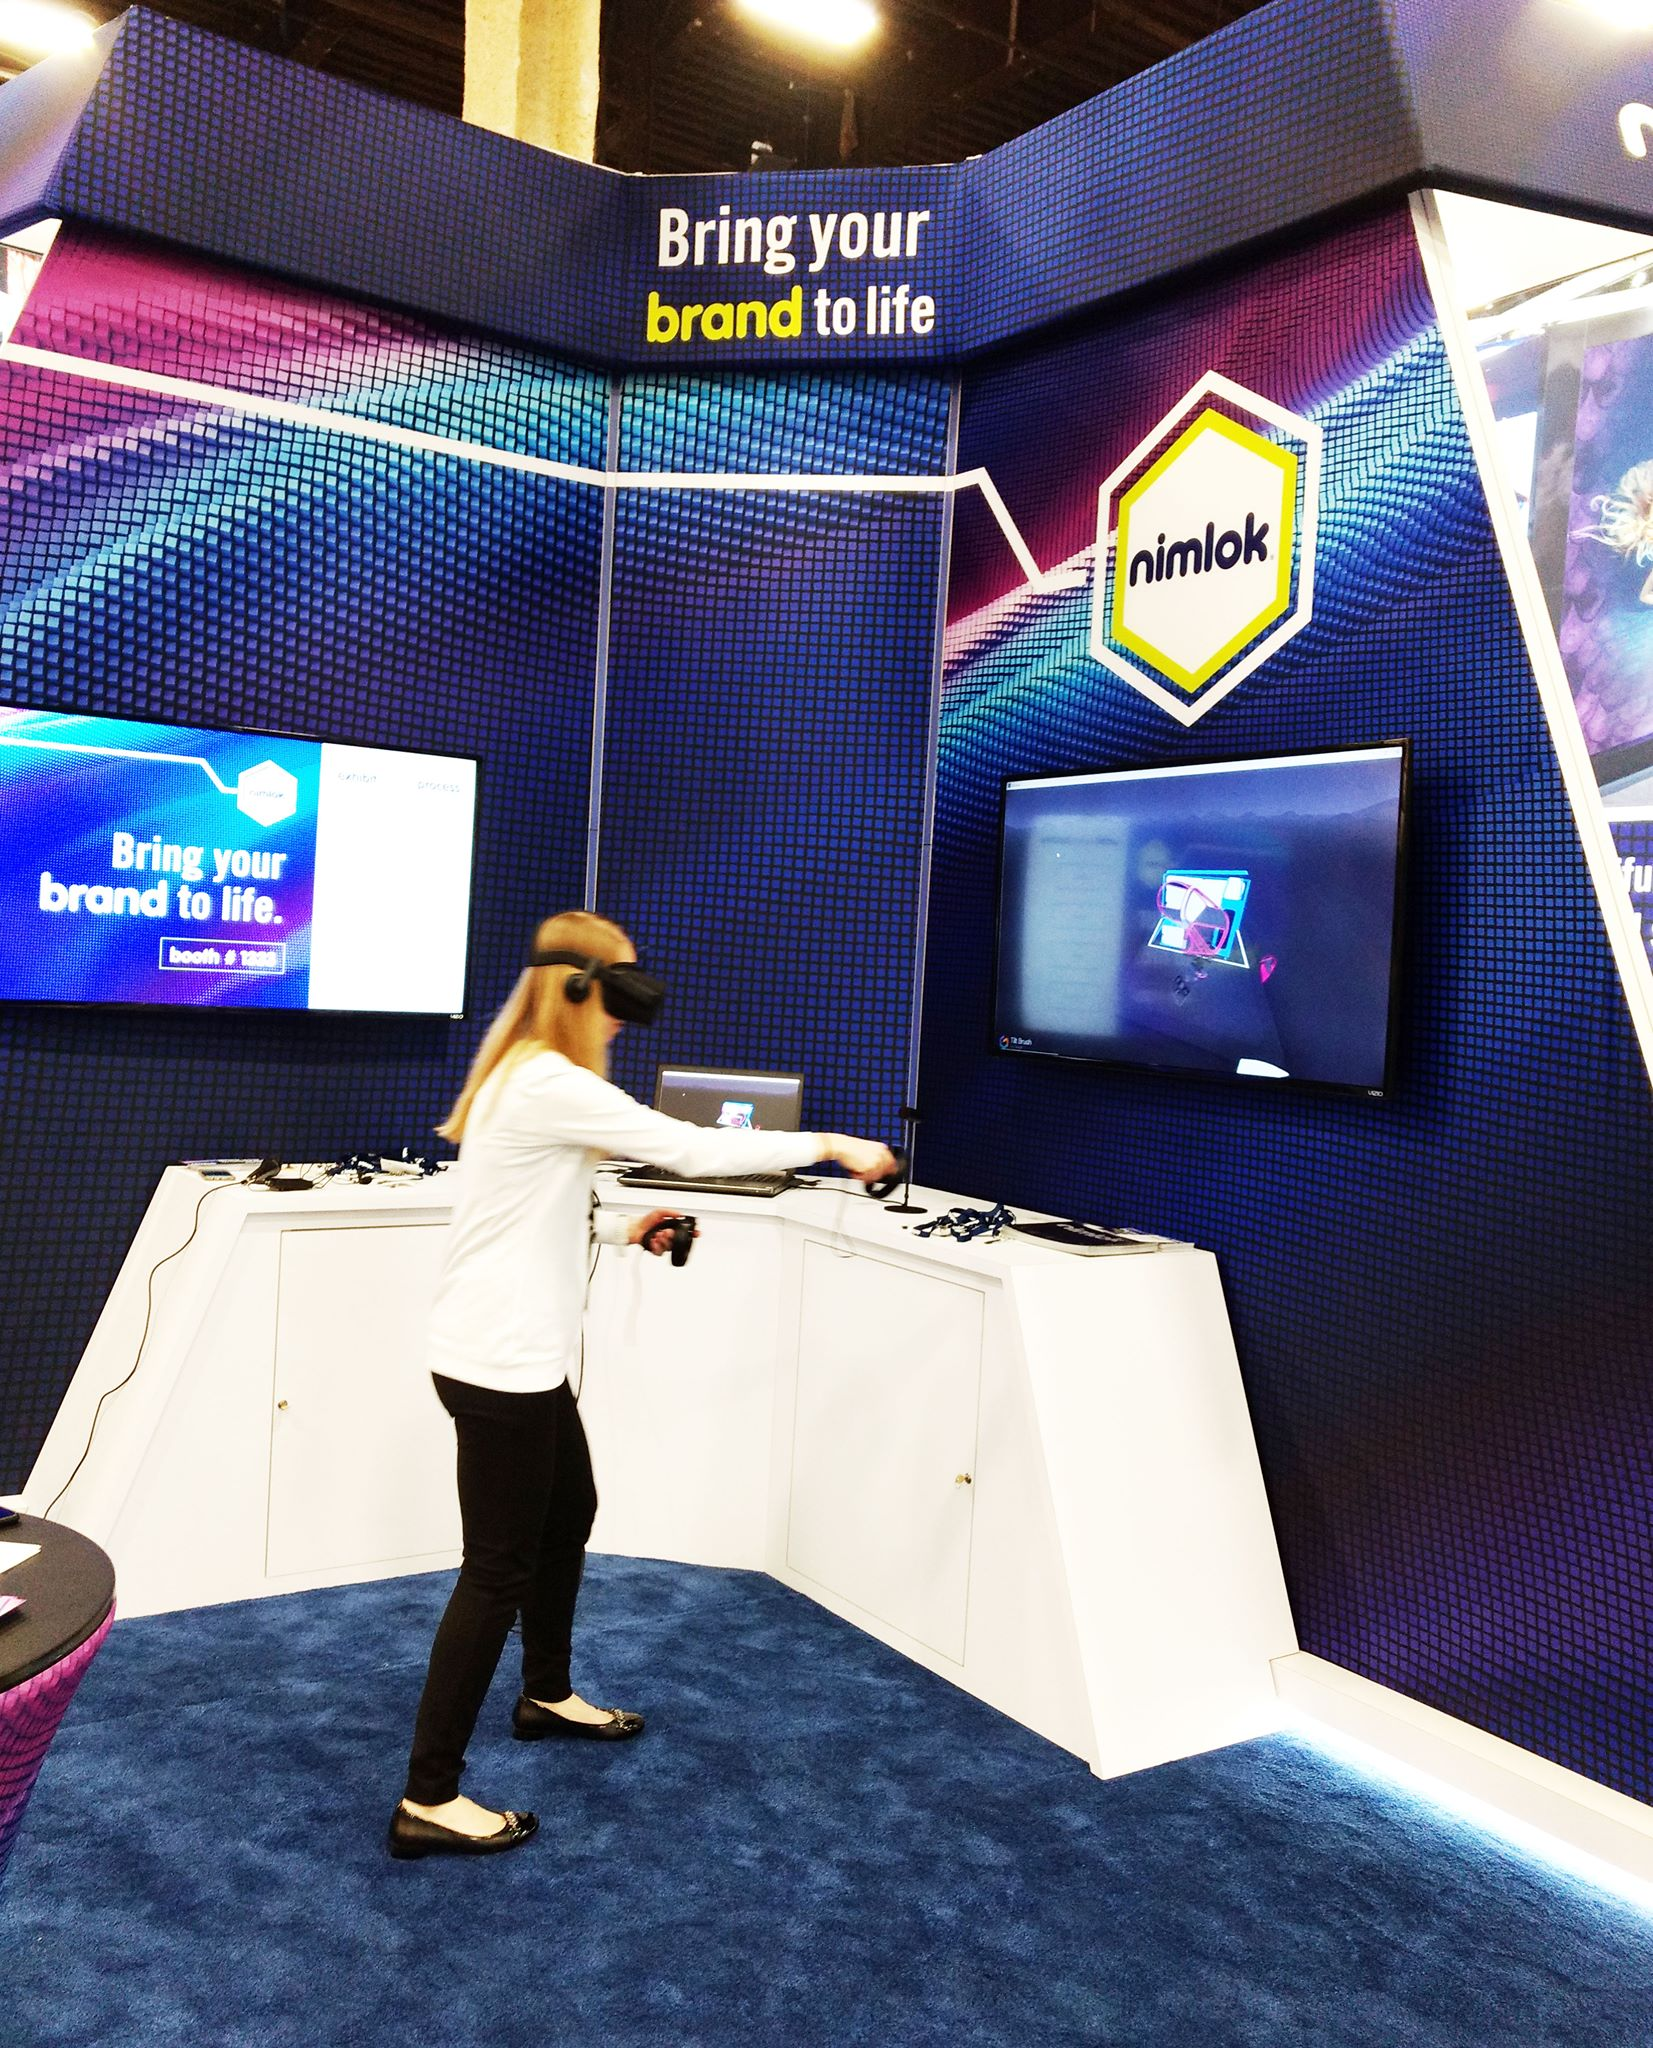 Exhibitor using virtual reality to entice trade show attendees in exhibition booth